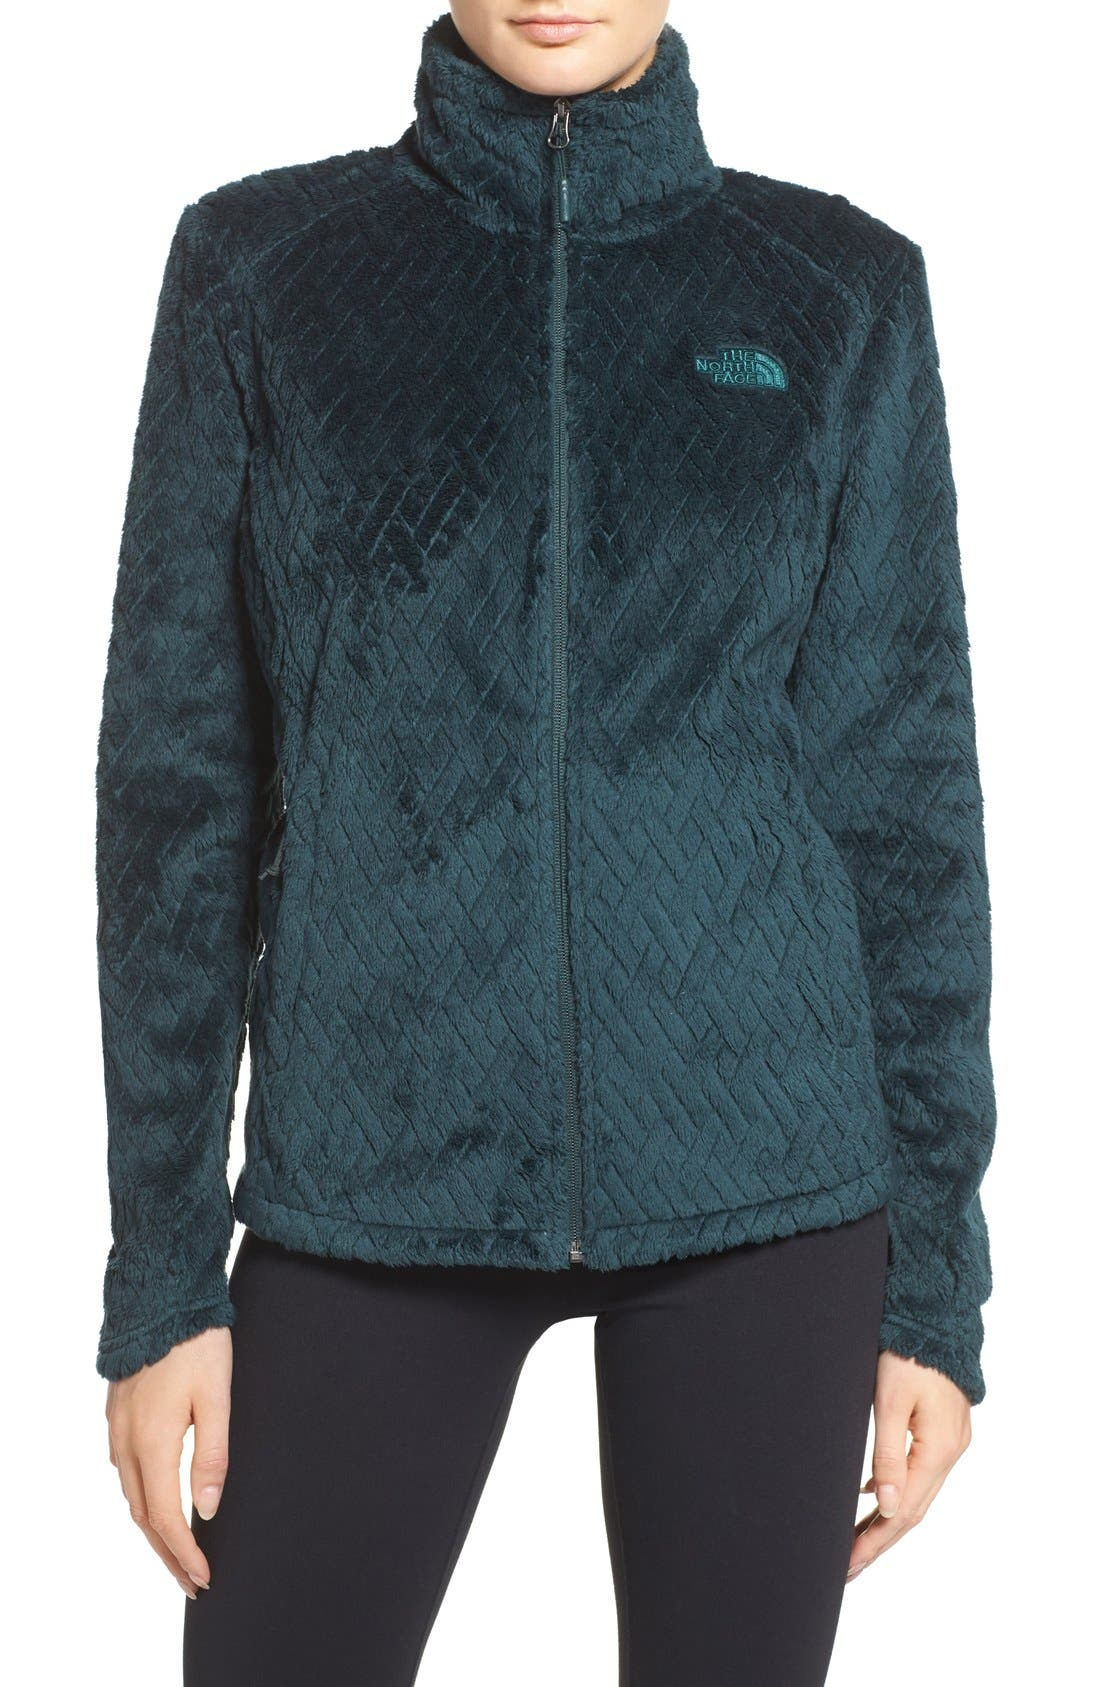 Alternate Image 1 Selected - The North Face Novelty Osito Fleece Jacket